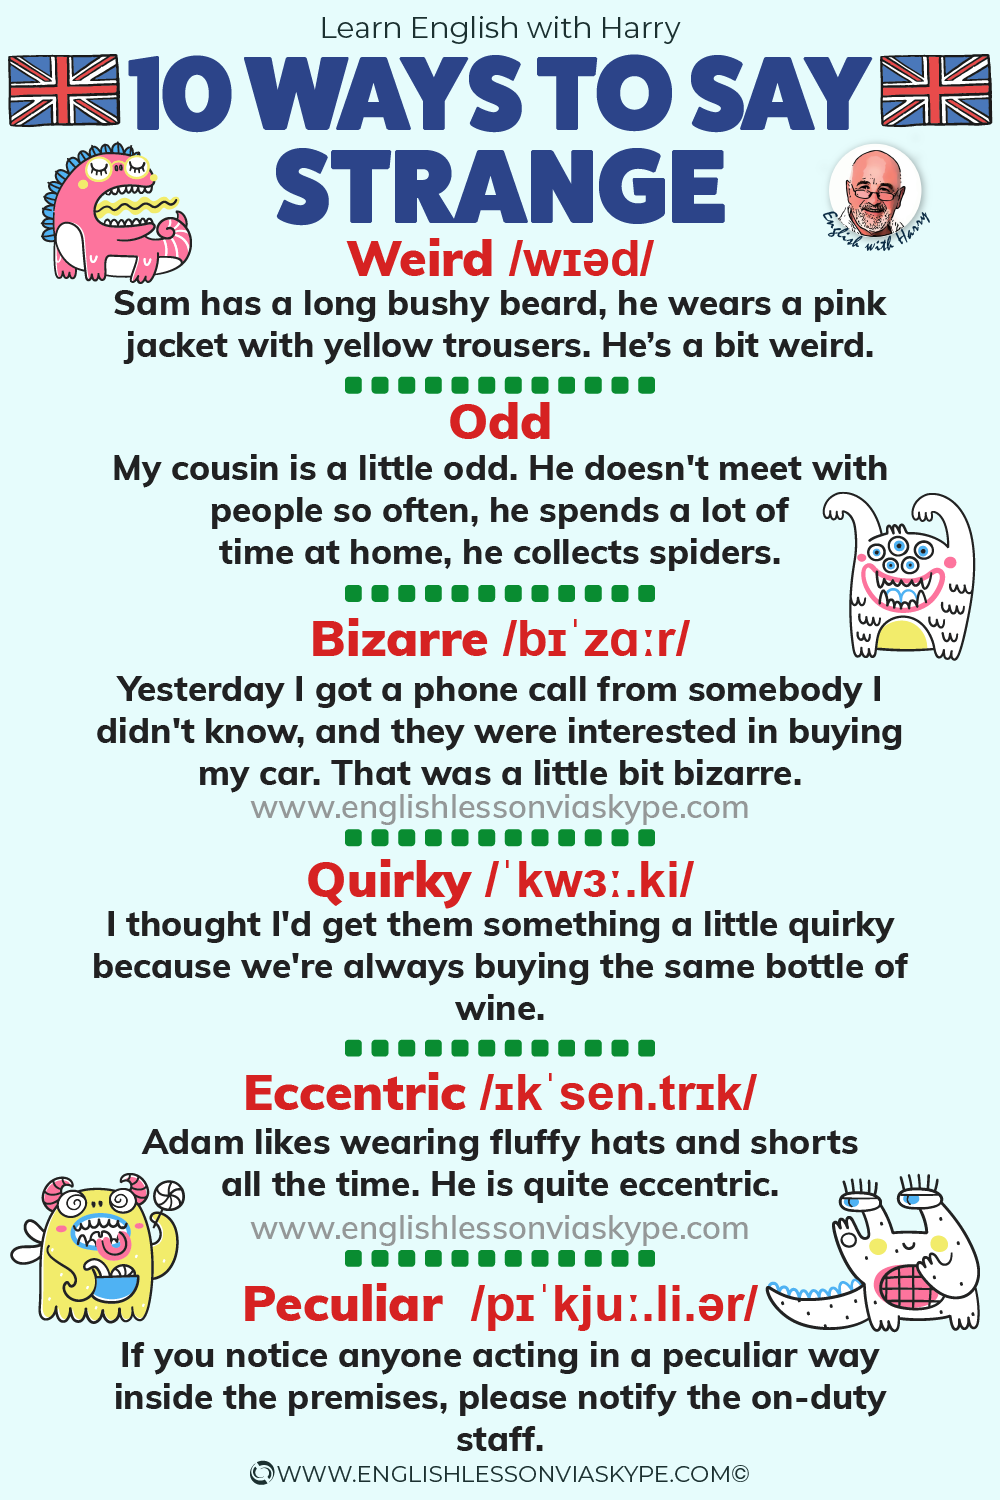 English vocabulary. 10 Ways to say strange in English. From intermediate to advanced English with www.englishlessonviaskype.com #learnenglish #englishlessons #EnglishTeacher #vocabulary #ingles #อังกฤษ #английский #aprenderingles #english #cursodeingles #учианглийский #vocabulário #dicasdeingles #learningenglish #ingilizce #englishgrammar #englishvocabulary #ielts #idiomas